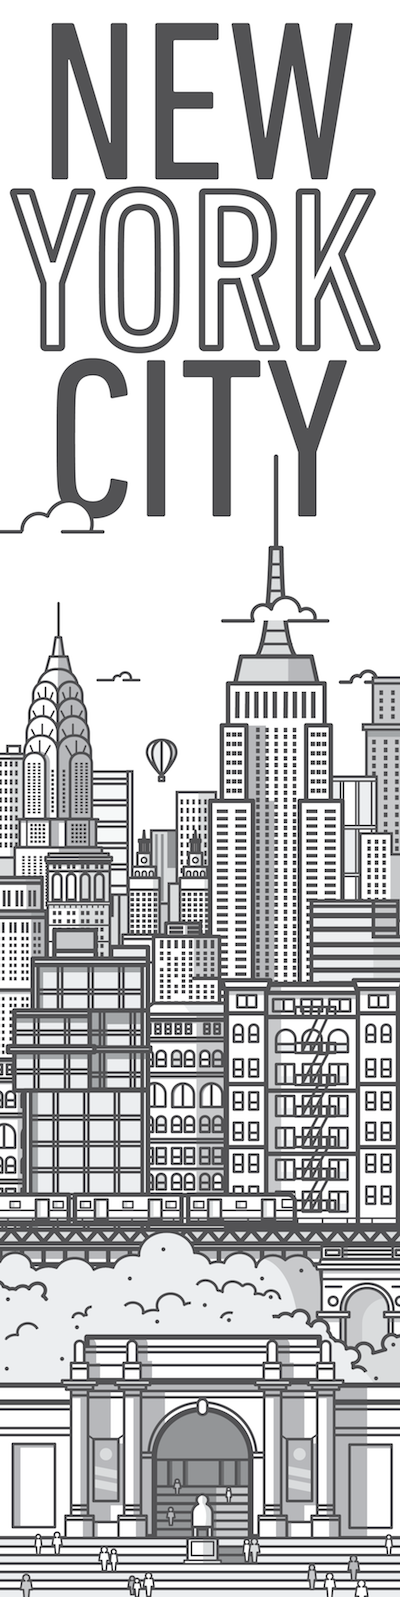 Dribbble Nycbig Dribbble Png By Nick Staab City Illustration House Illustration New York